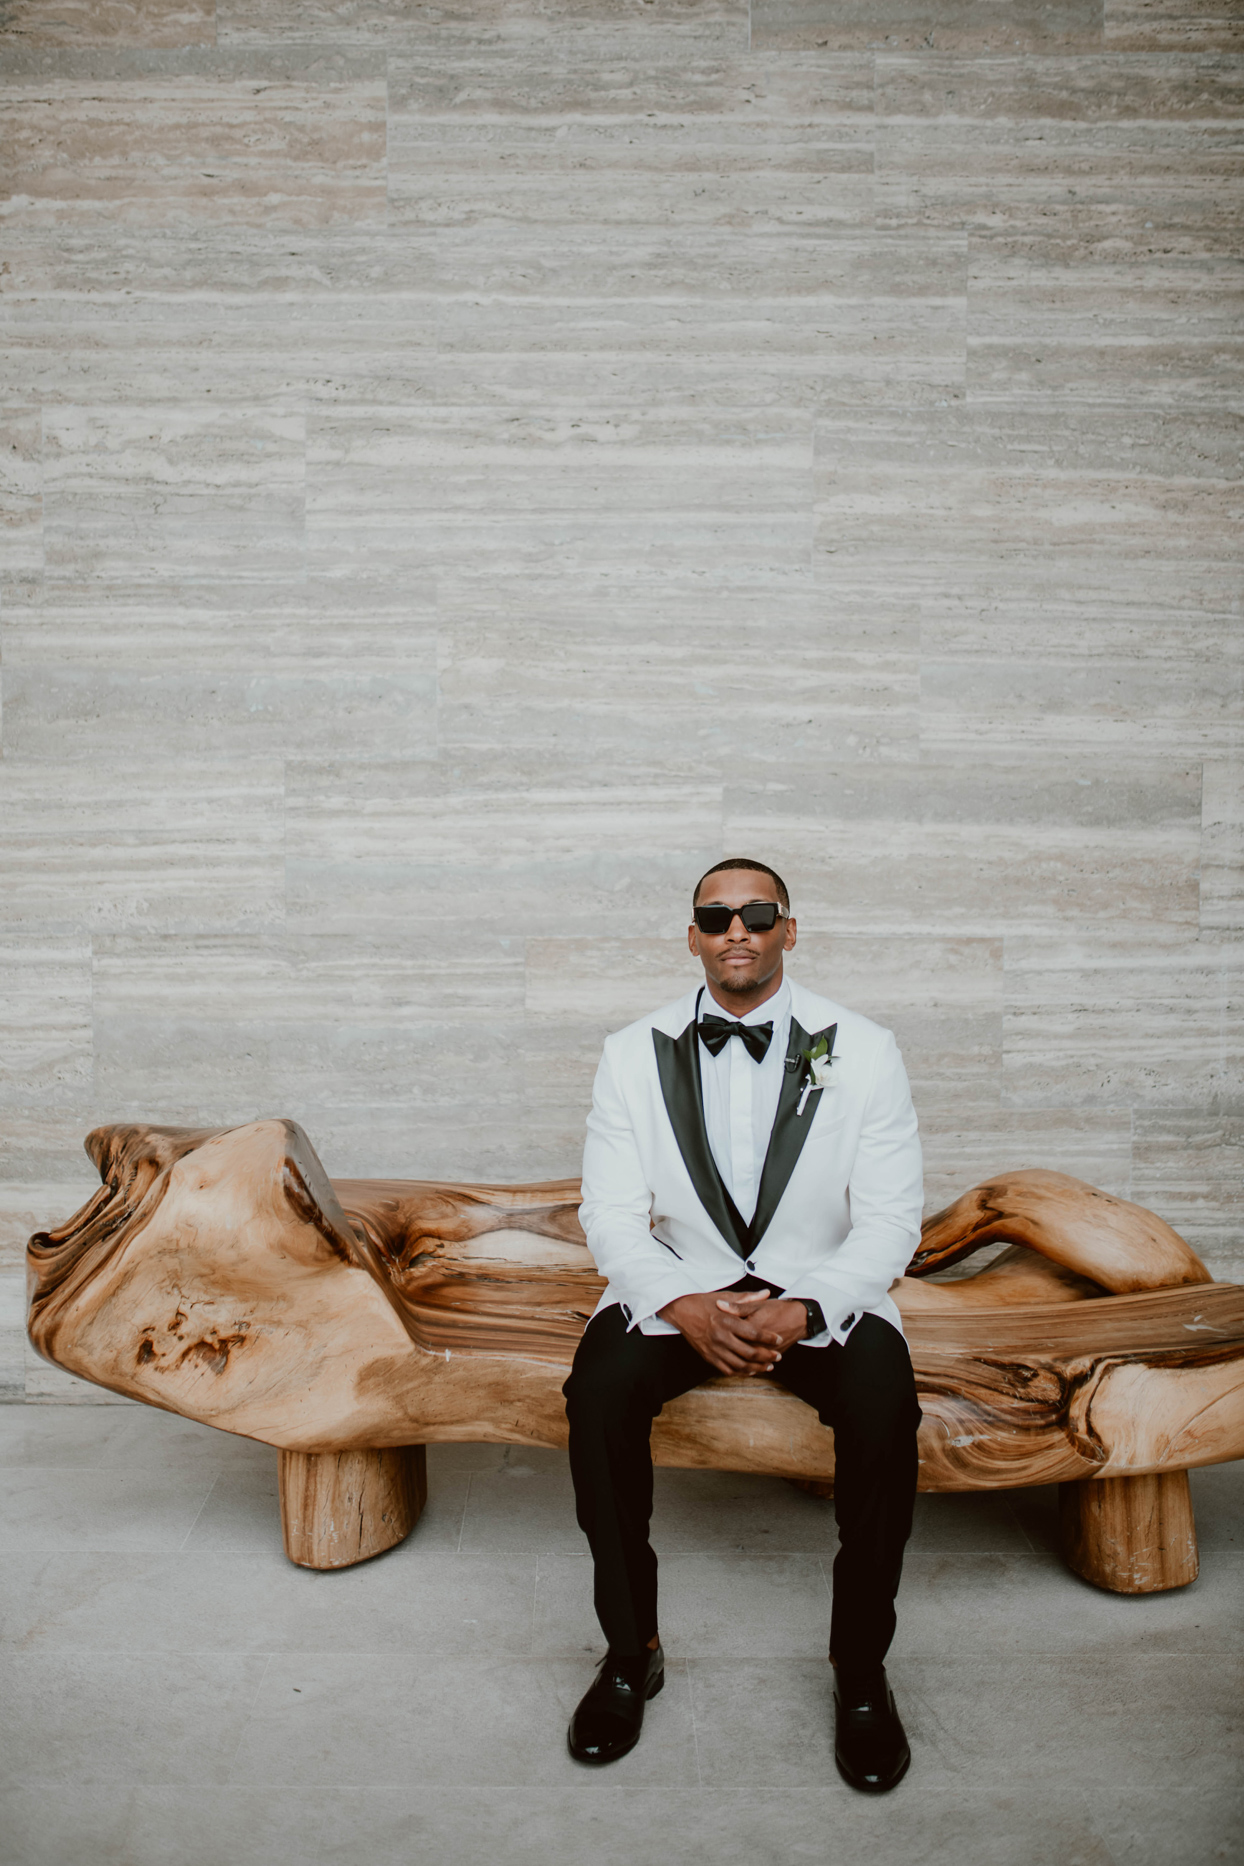 groom in black and white tuxedo sitting on wooden bench